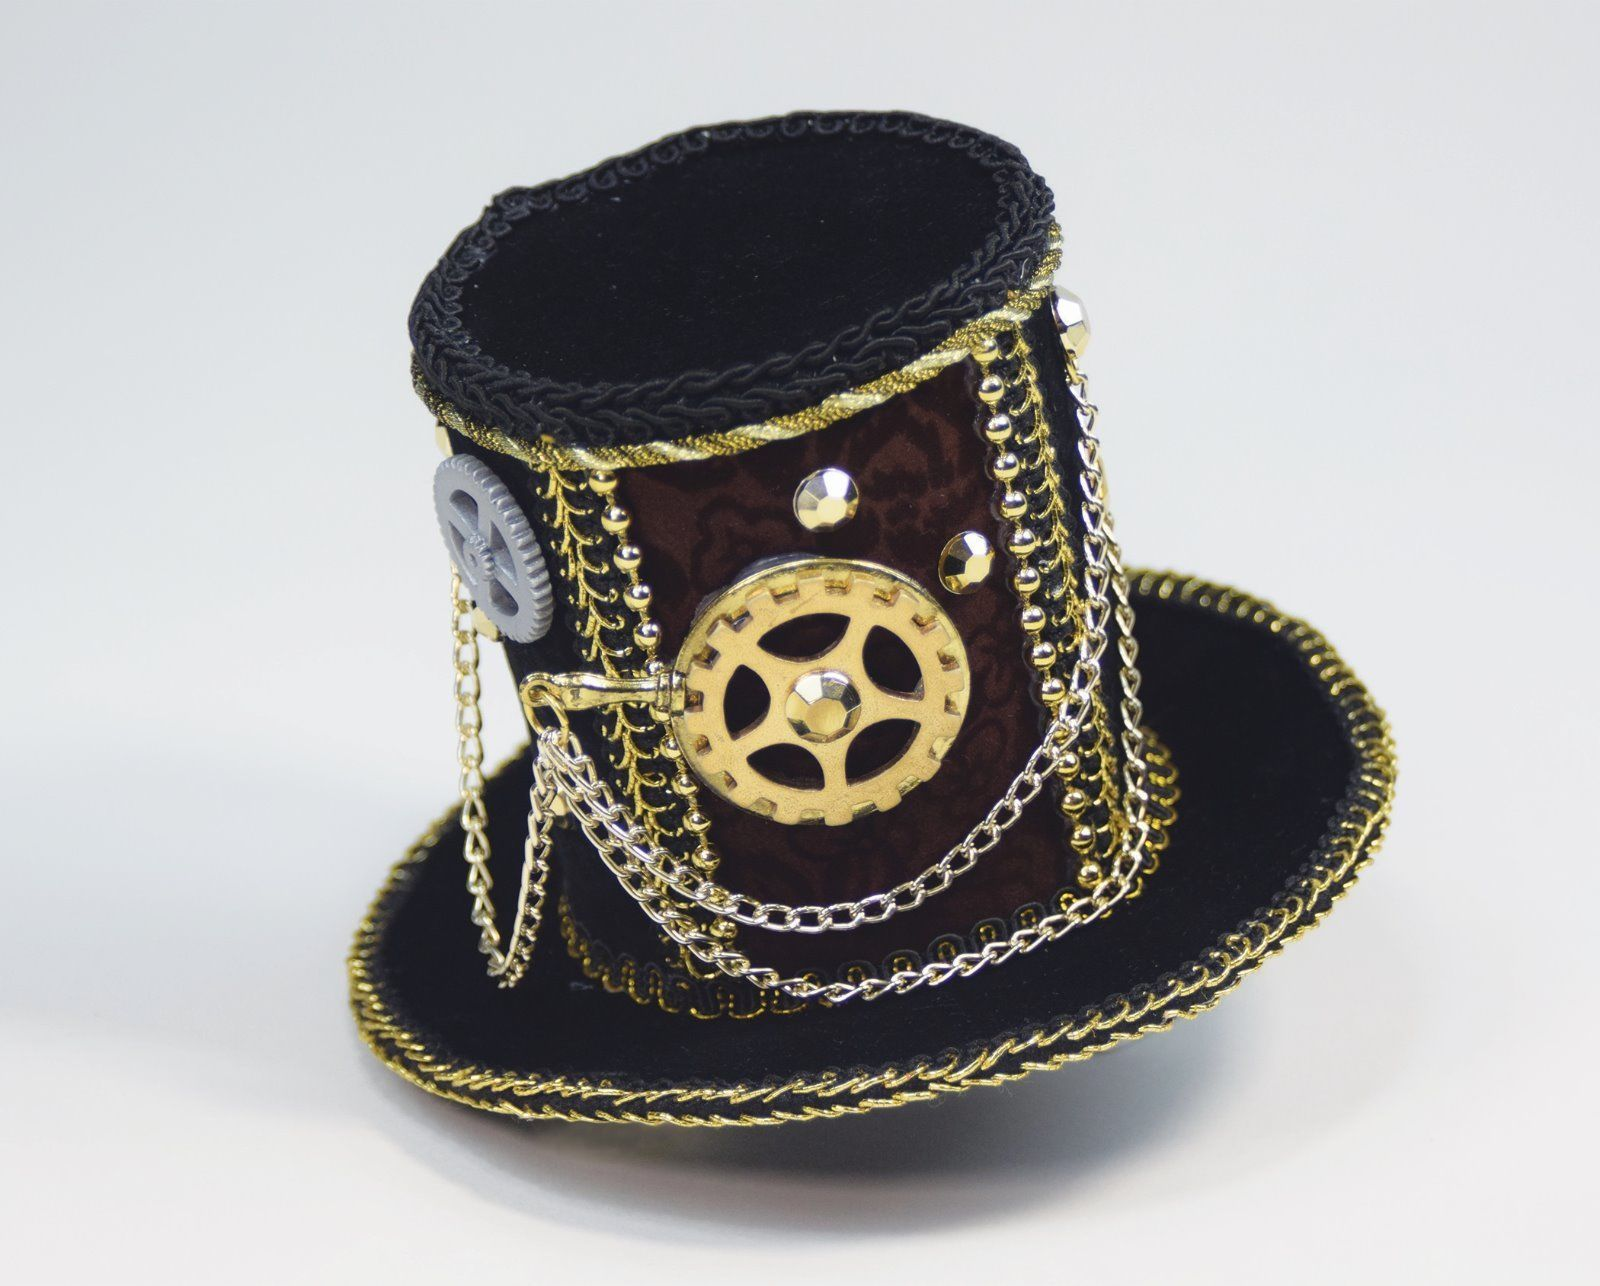 Primary image for SteamPunk Cosplay Mini Black Velvet Gear & Chain Victorian Cocktail Top Hat, NEW